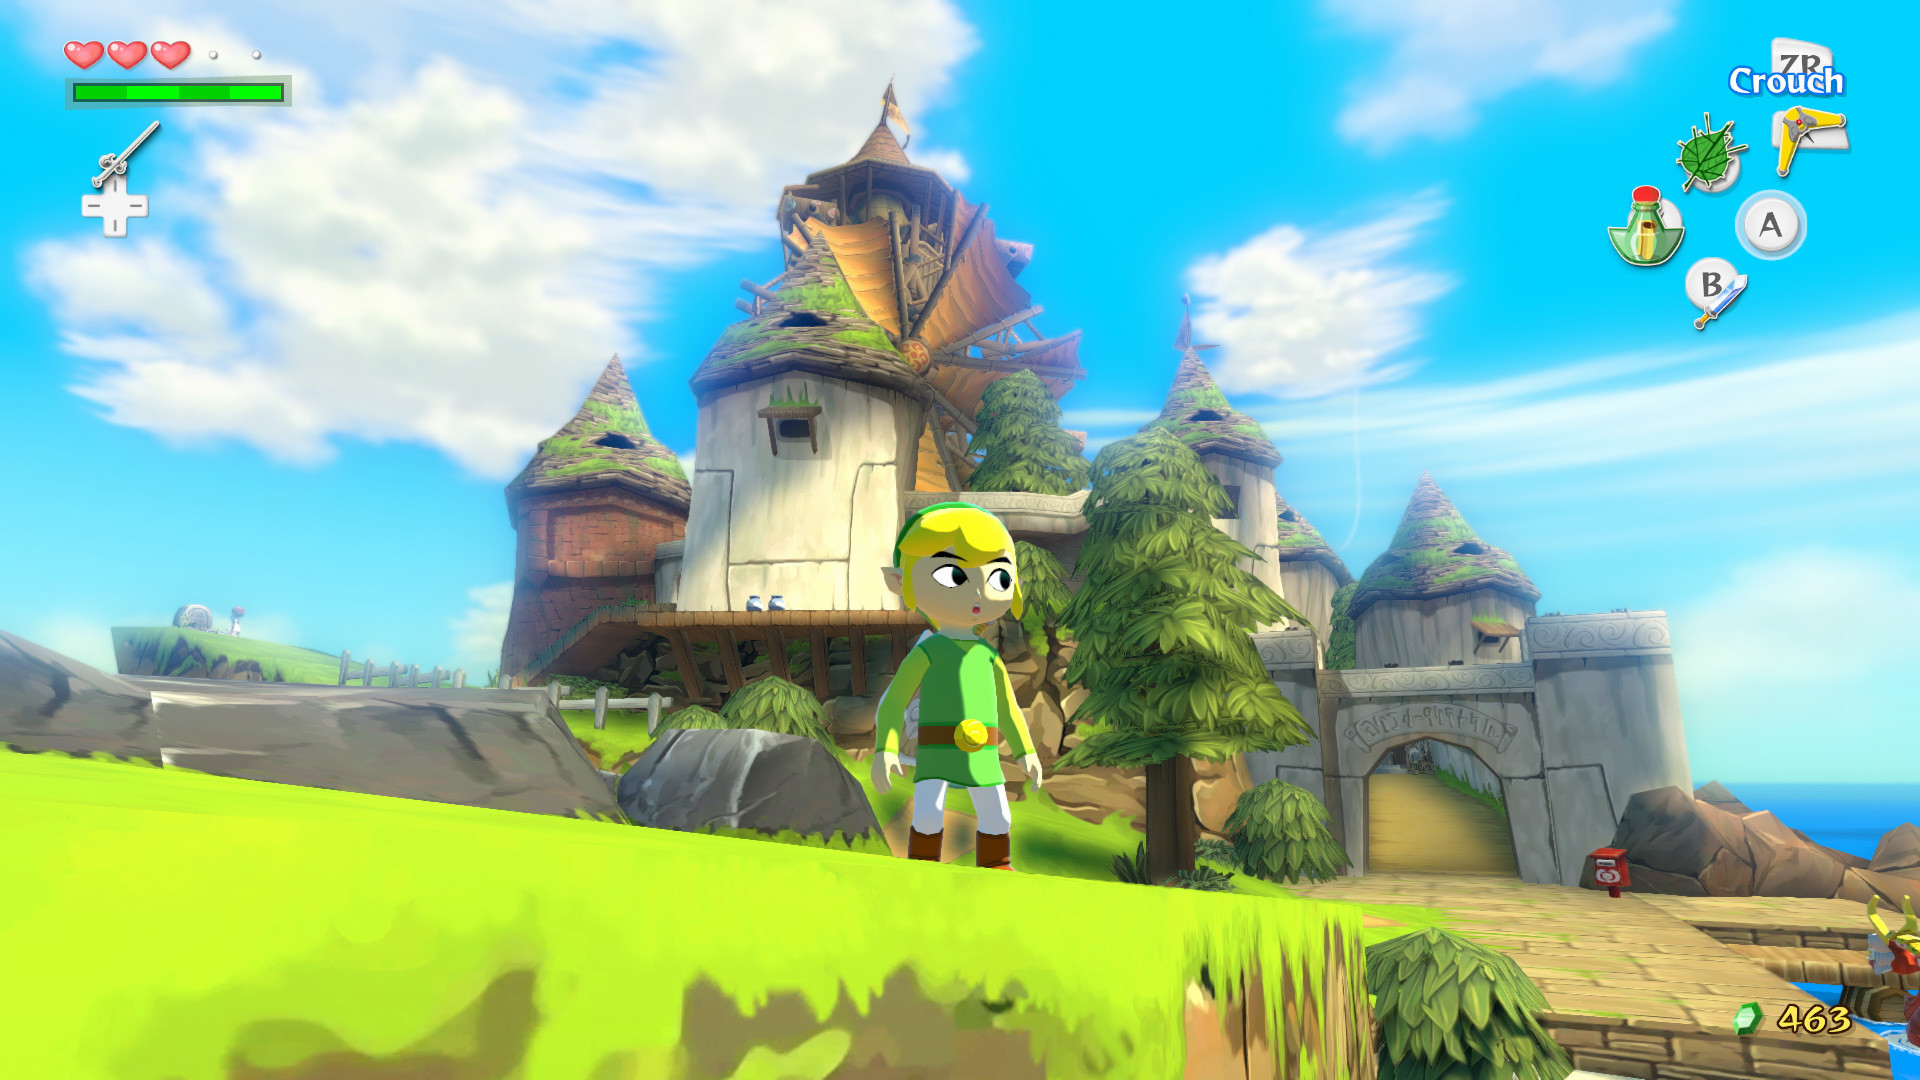 … wallpapers; legend of zelda the wind waker hd ot tingling with hd …